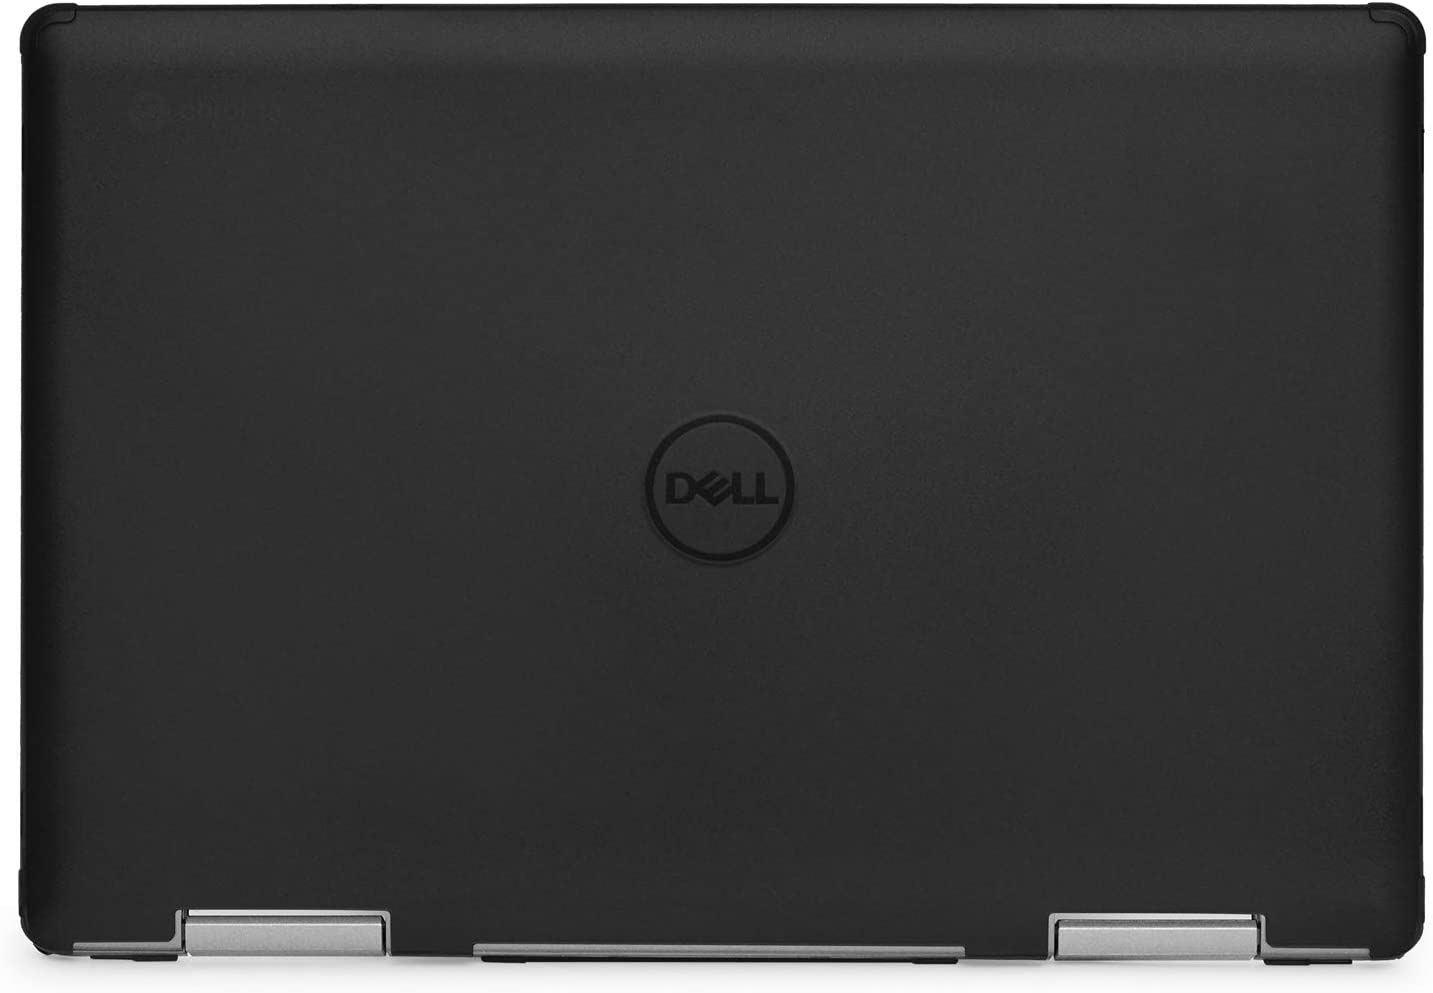 """mCover Hard Shell Case for 14"""" Dell Inspiron 14 5481 2-in-1 Series Laptop Computers (NOT Compatible with Other Dell Inspiron Series) (Black)"""